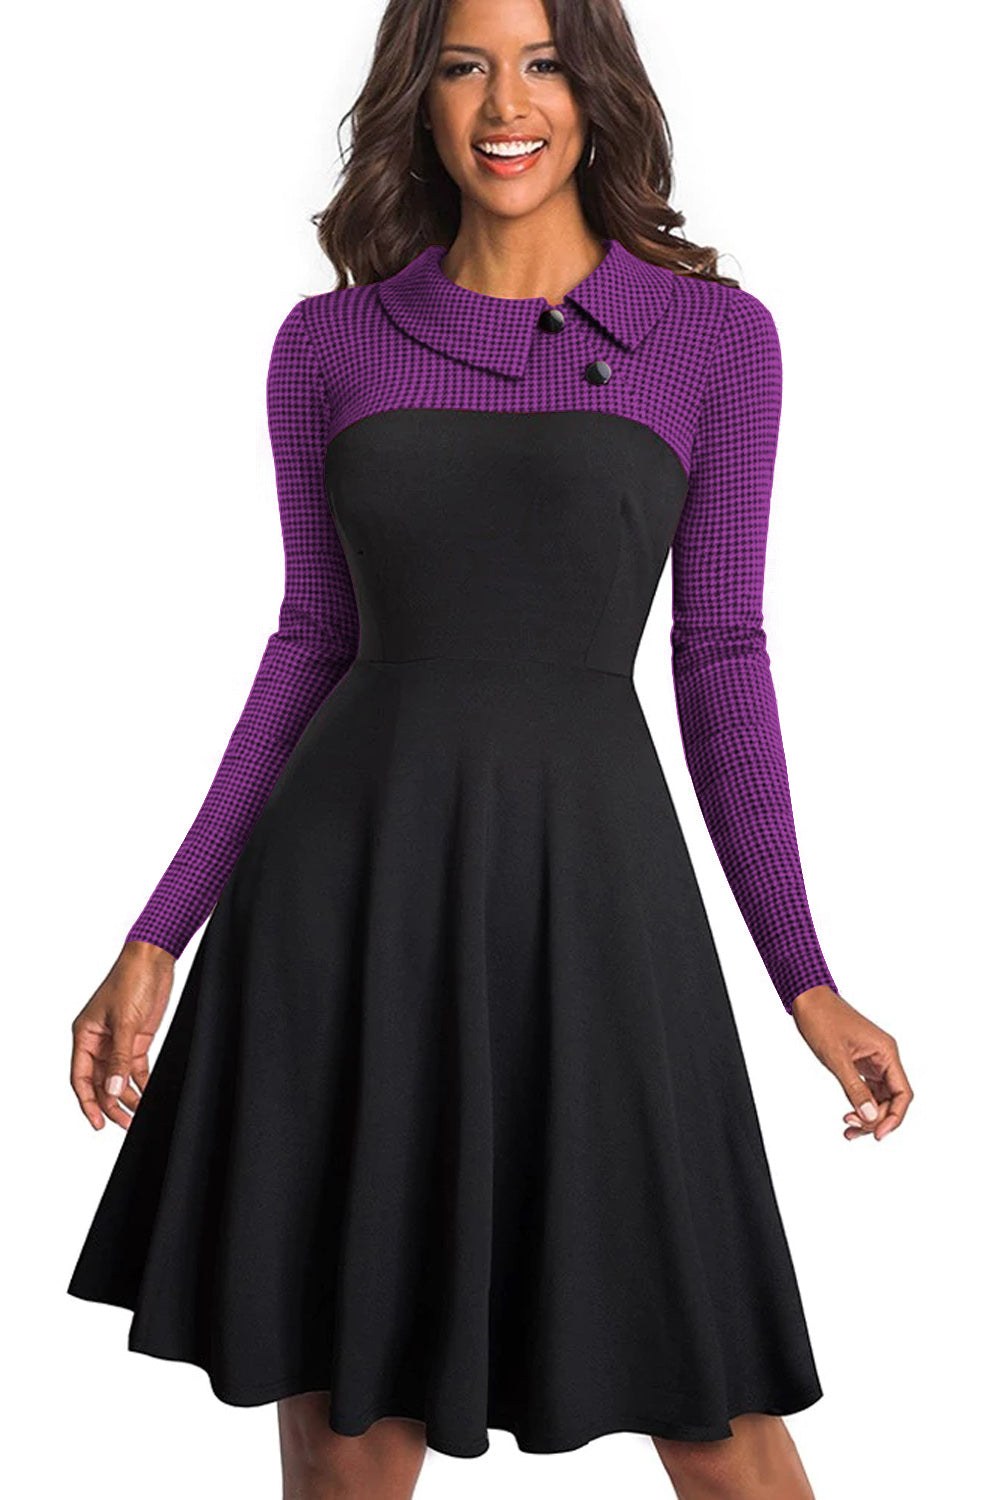 Purple Vintage Turn-Down Collar Pinup Button A-Line Dress